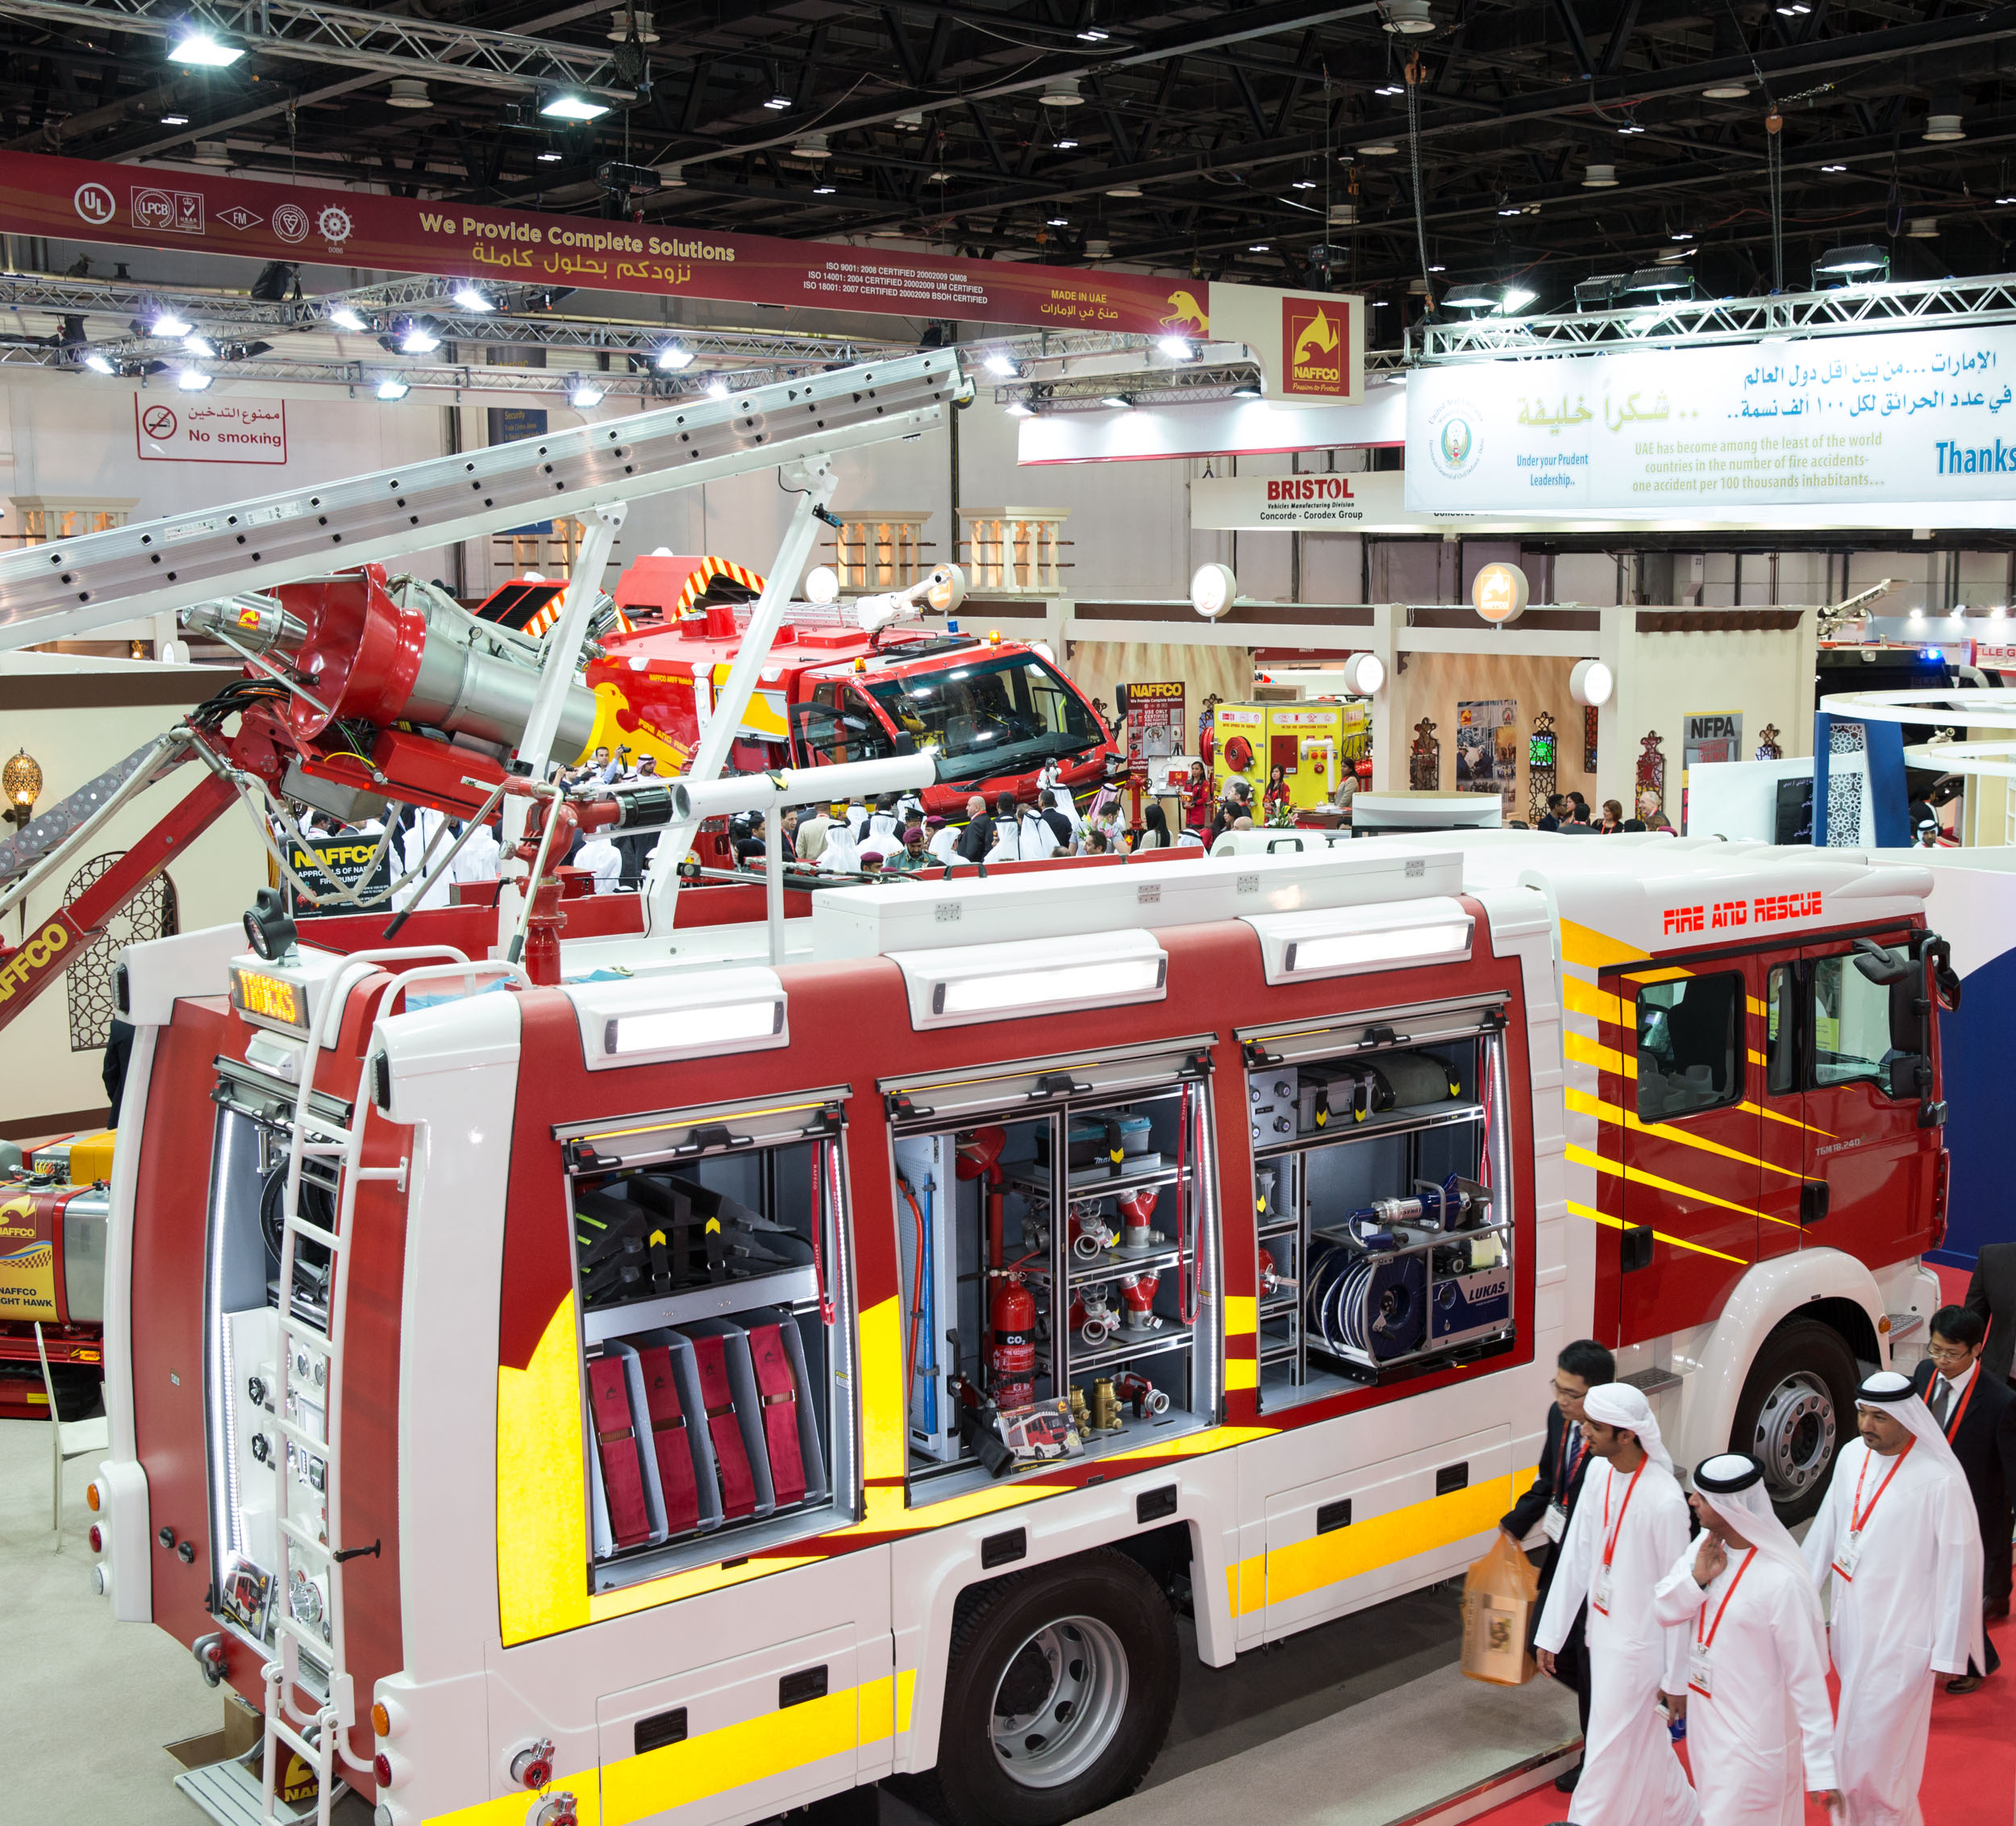 Intersec Dubai Exhibition Stand Area